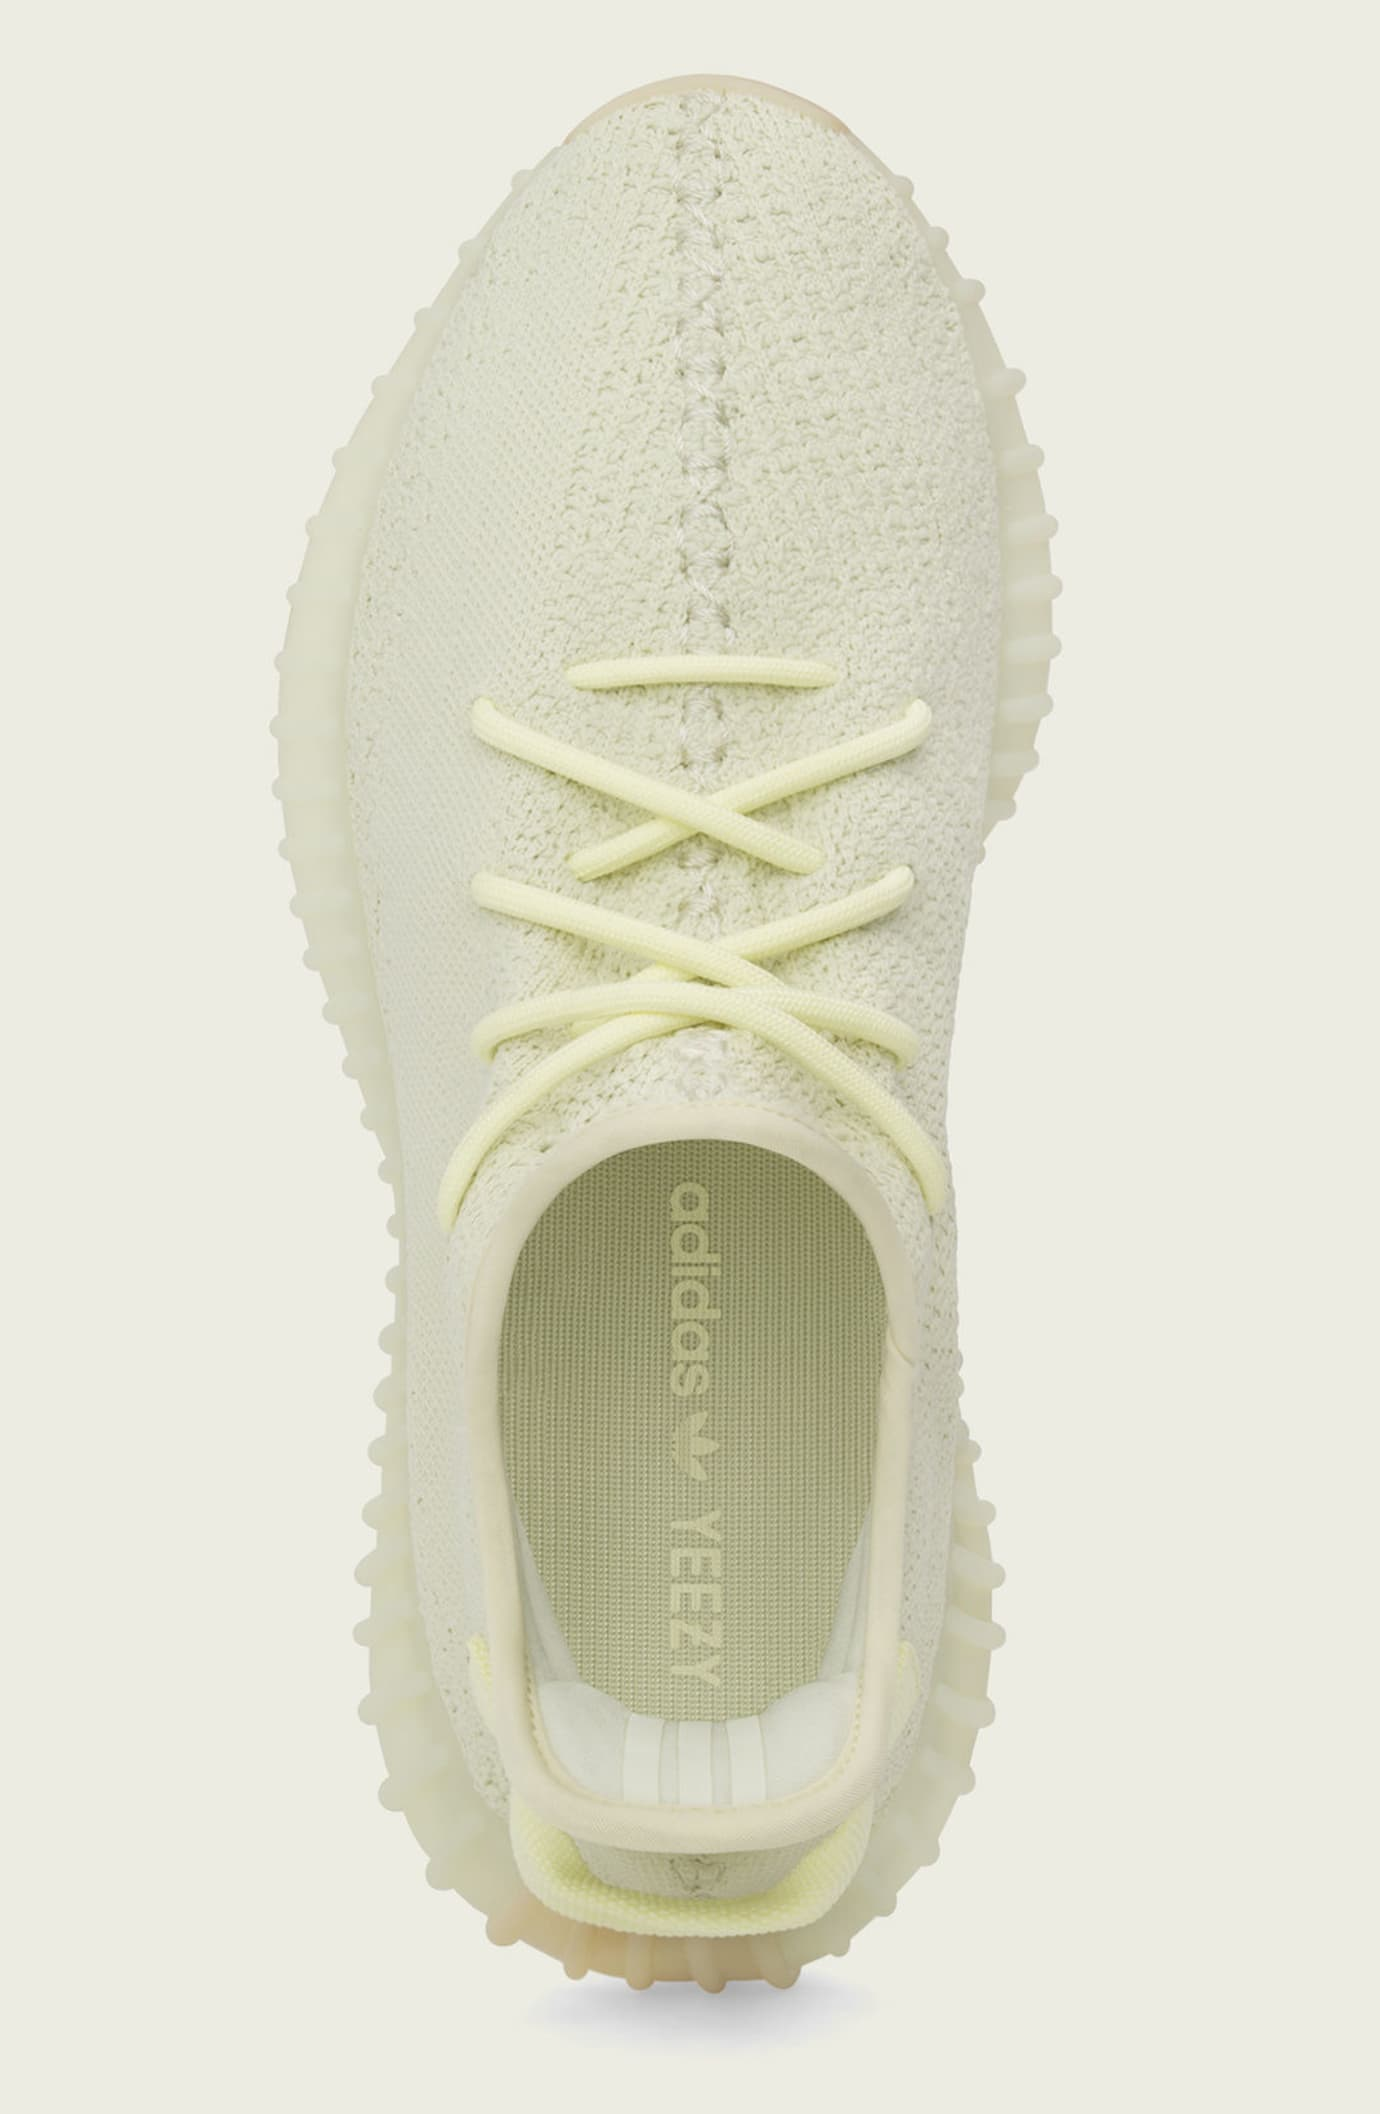 occhiata latitudine Precursore  Adidas Yeezy Boost 350 V2 'Butter' F36980 January 2018 Release Date | Sole  Collector